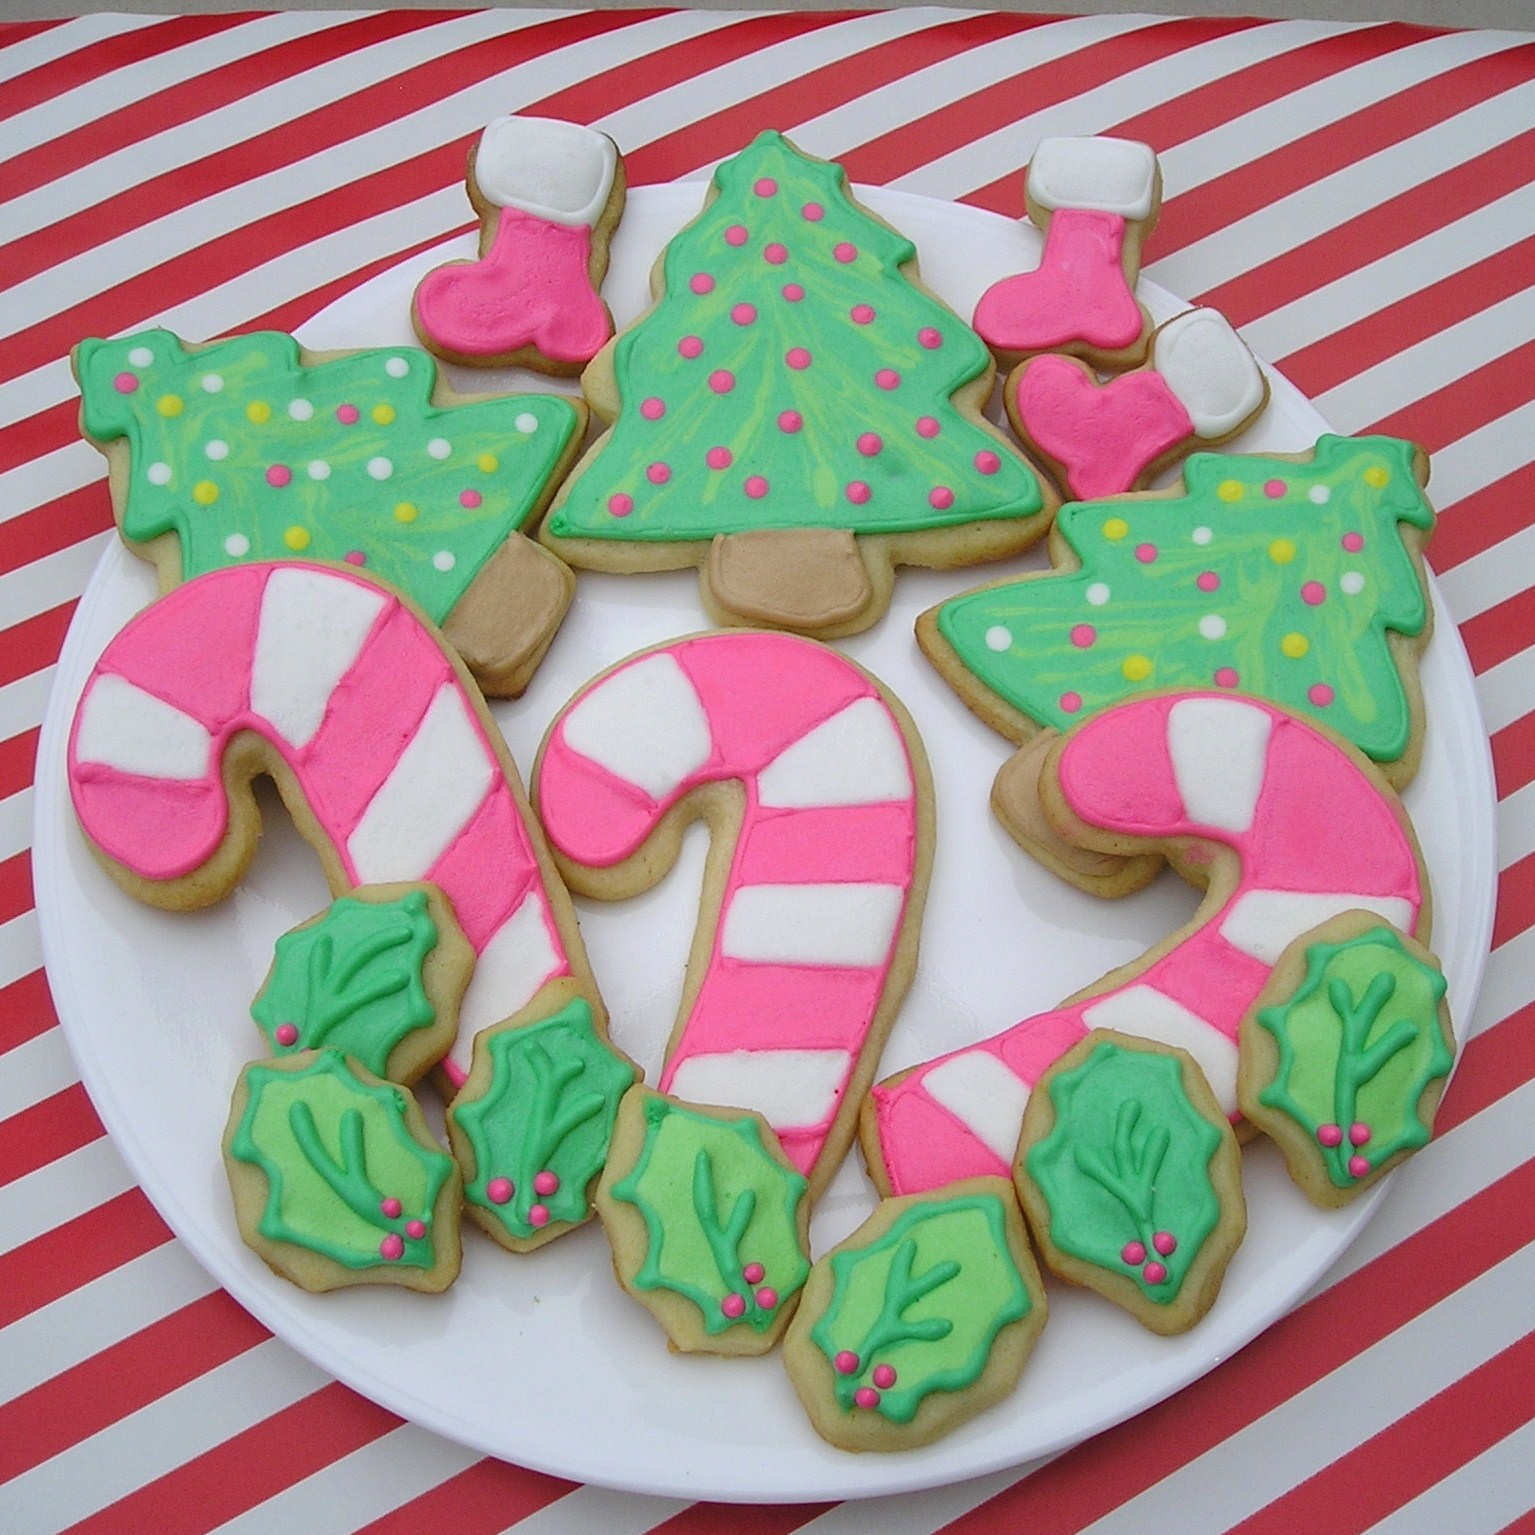 Holiday Sugar Cookie Decorating Ideas Part - 42: Christmas Cookie Decorating Ideas Royal Icing : Decorated Holiday Sugar  Cookies Recipes Dishmaps